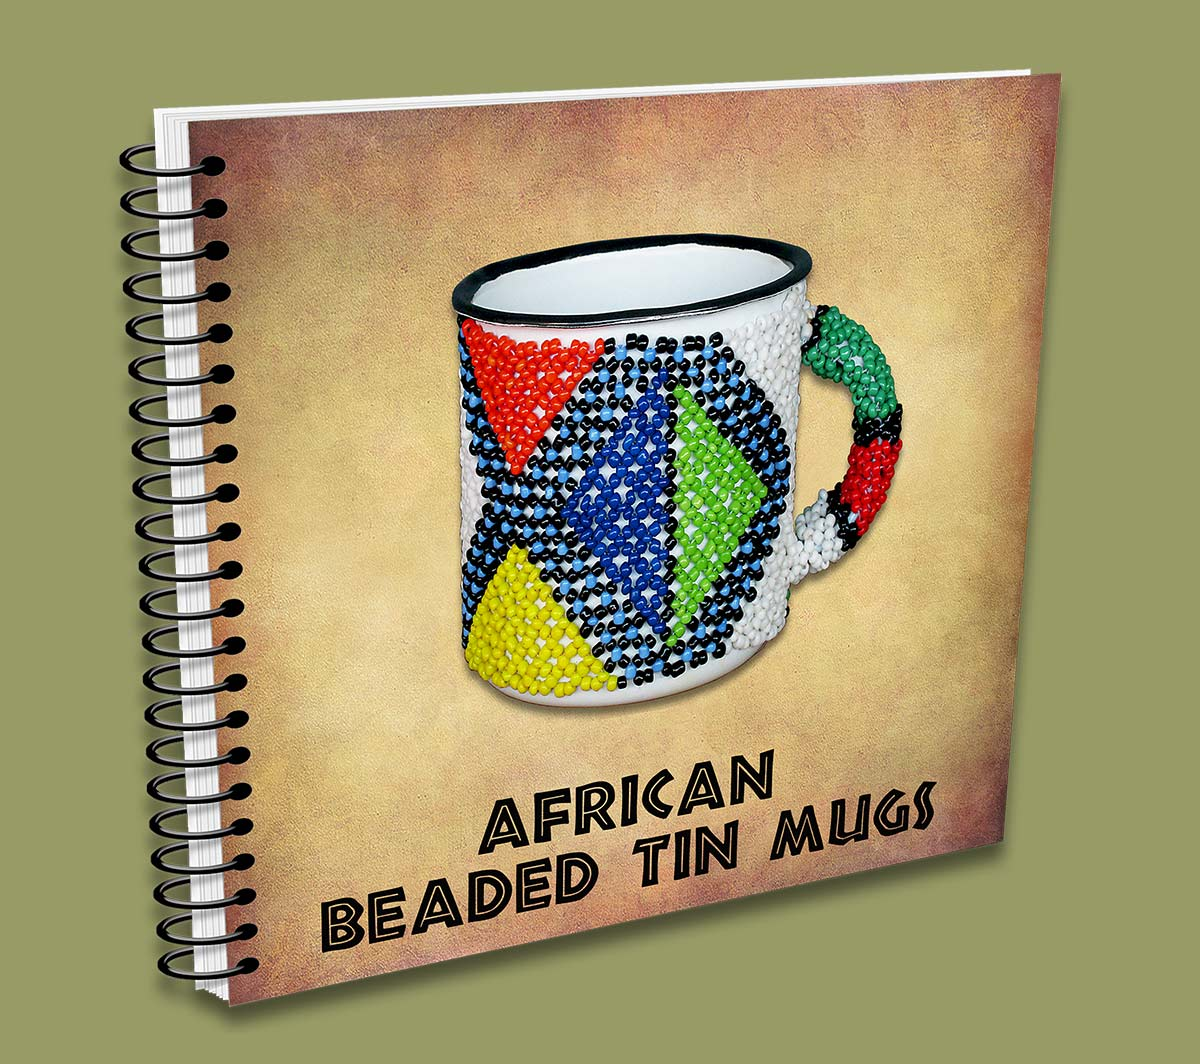 beaded-tin-mugs-catalogue-2